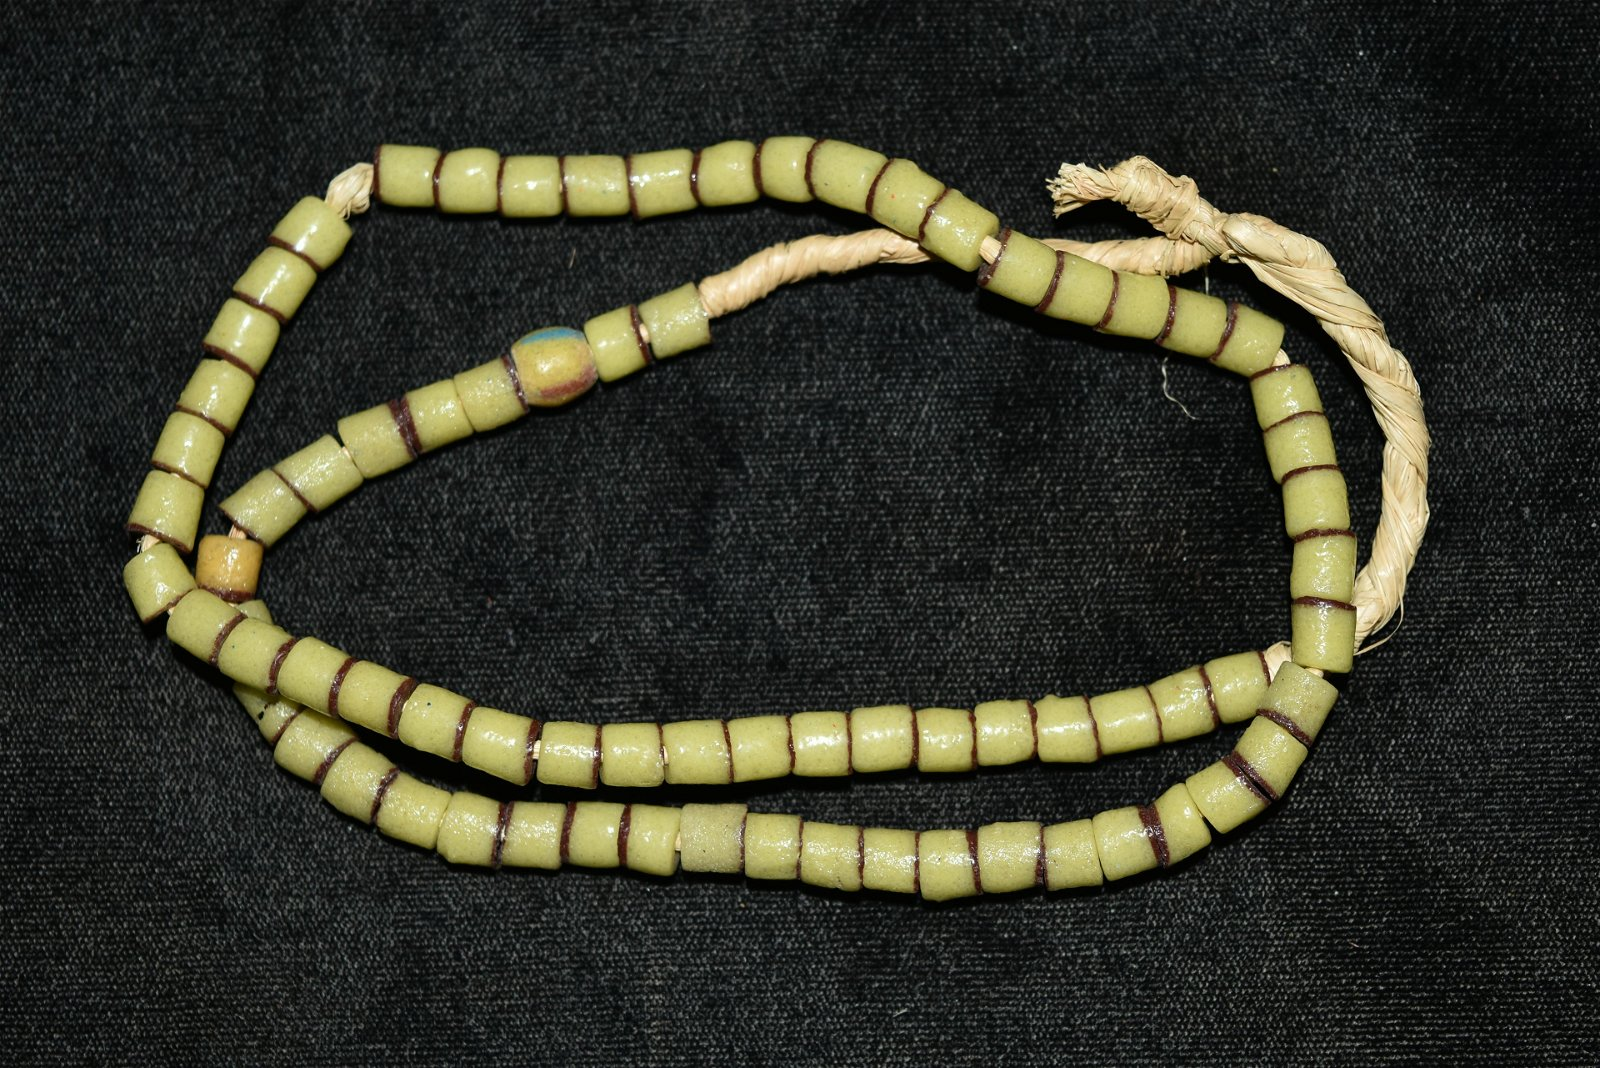 Strand of African Trade Beads